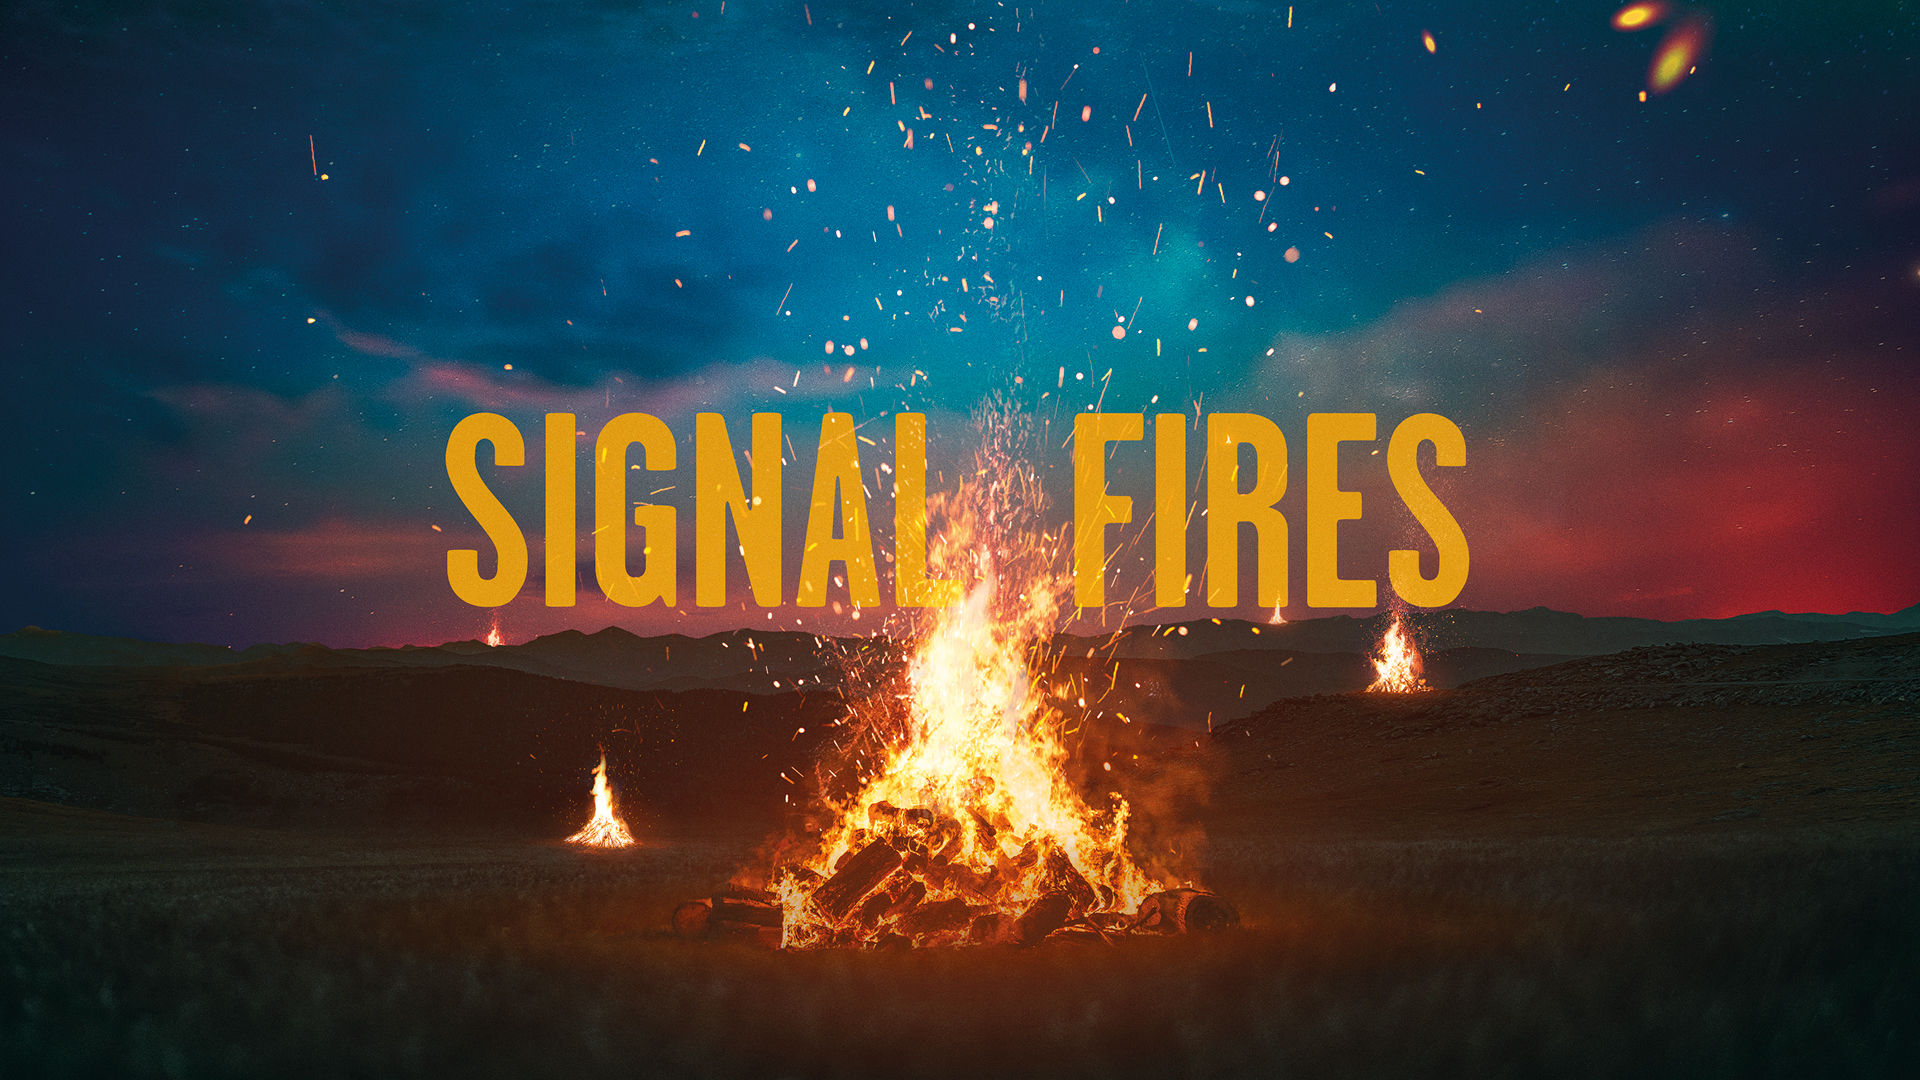 It is dusk with red streaks across the horizon. Before us a blazing bonfire. In the middle distance another. More fires can be seen scattered across a plain towards the horizon. Sparks fly up from the fire. A large yellow title: SIGNAL FIRES